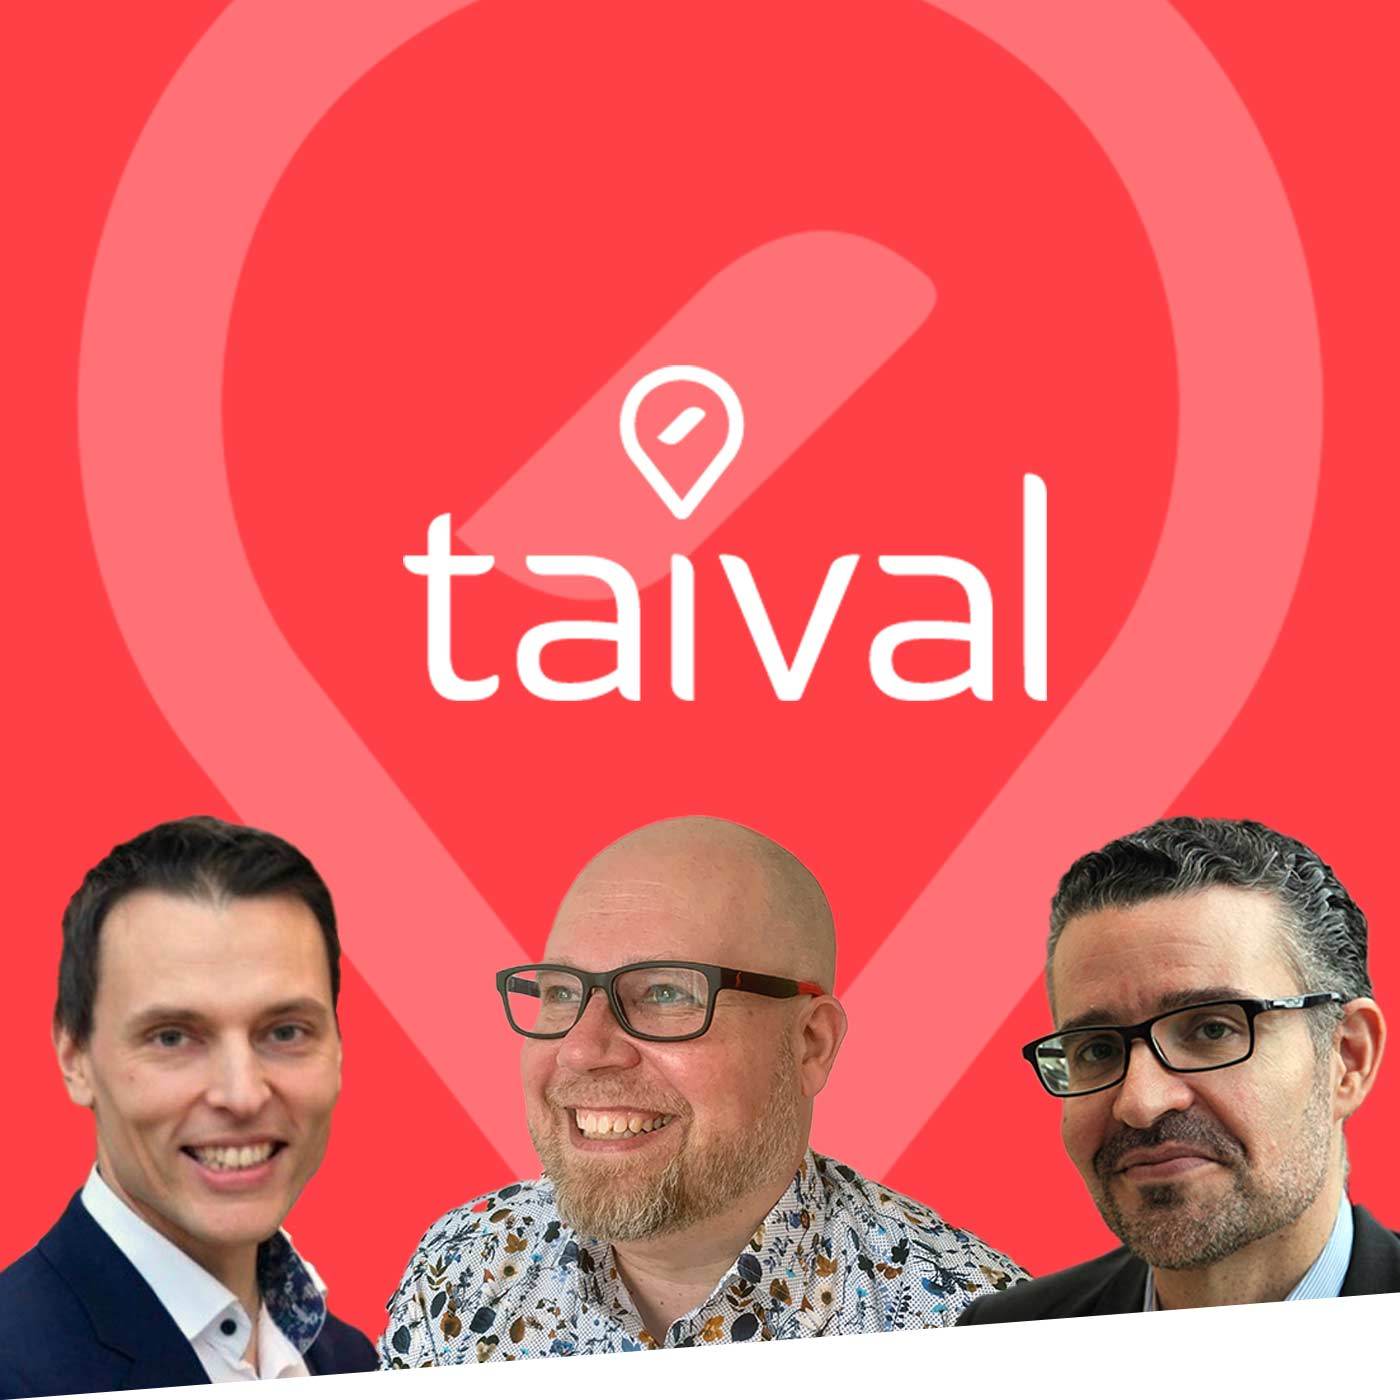 Our new podcast - A Weekly Taival - Episode 1